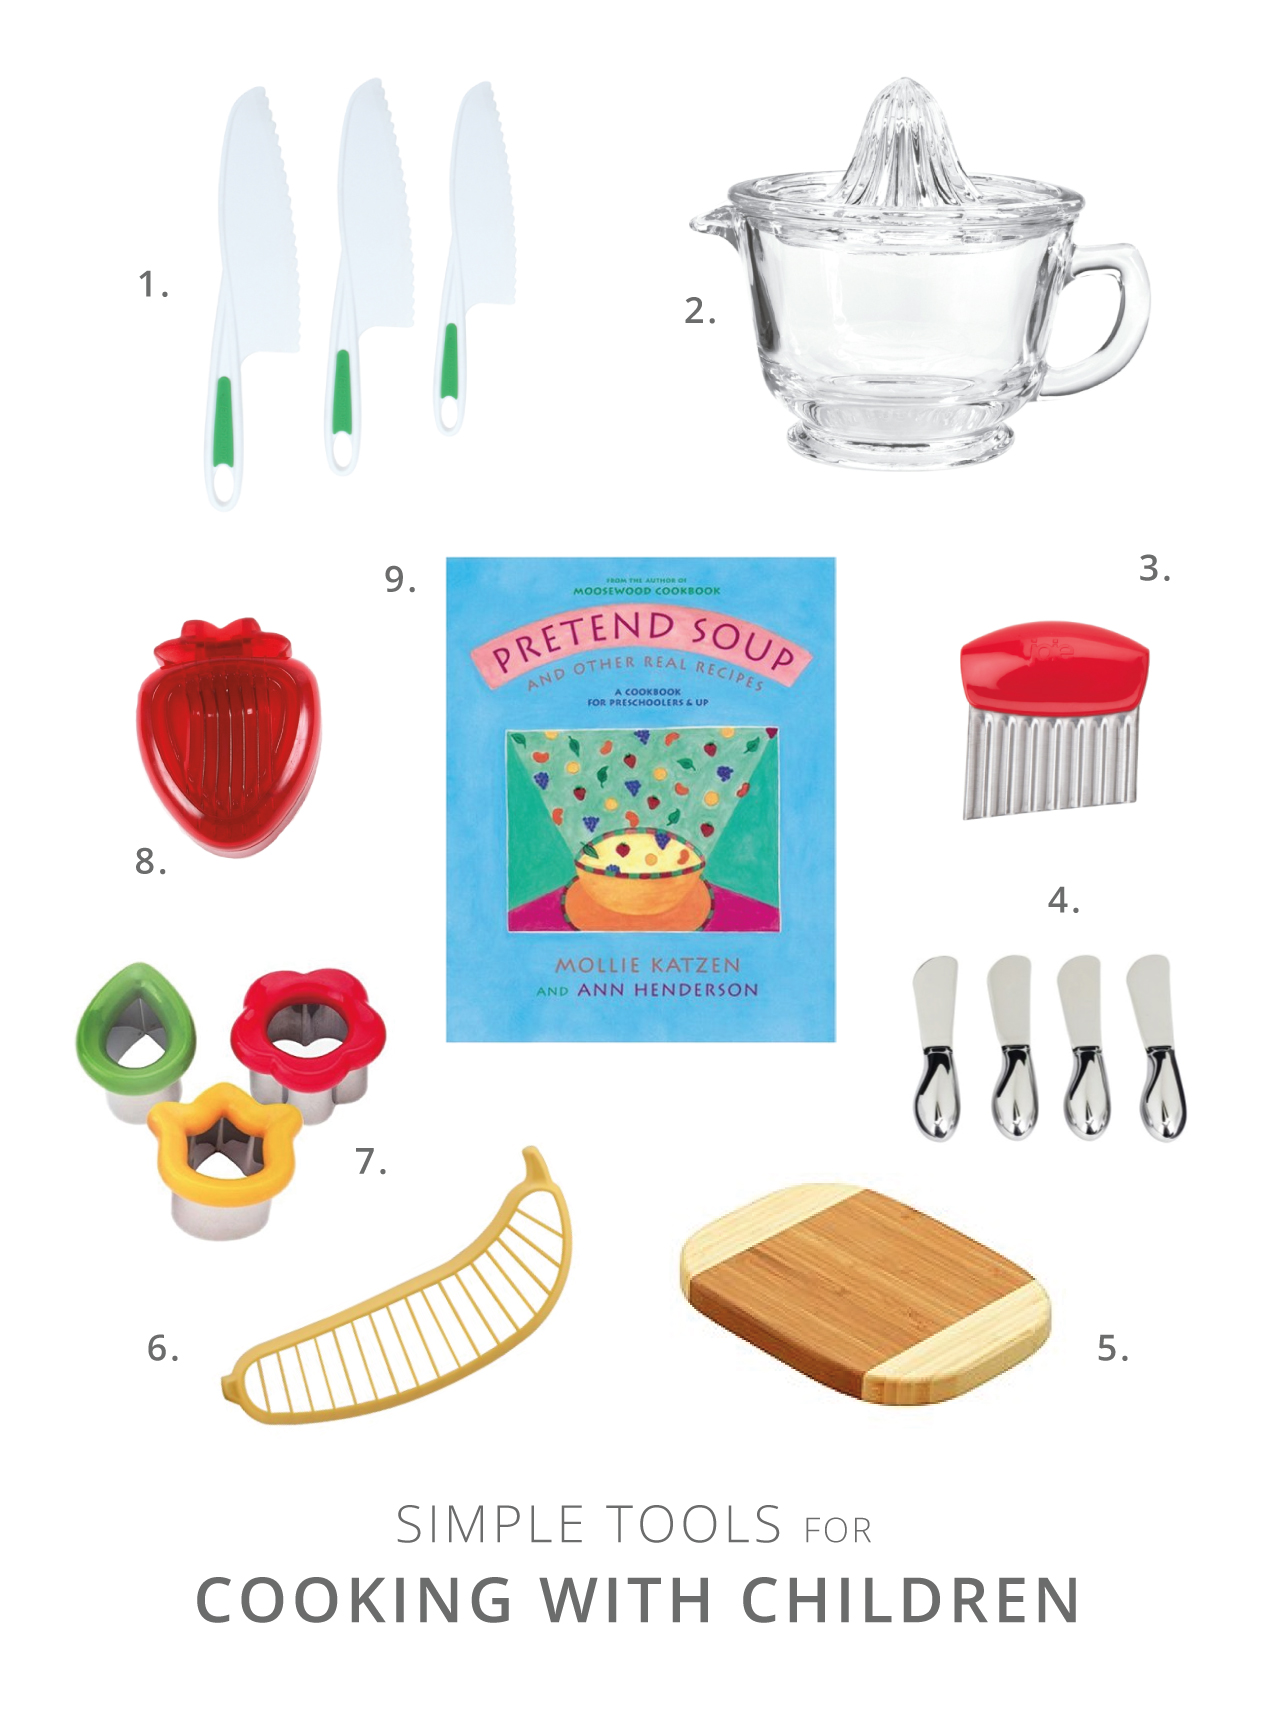 SimpleToolsforCookingwithChildren